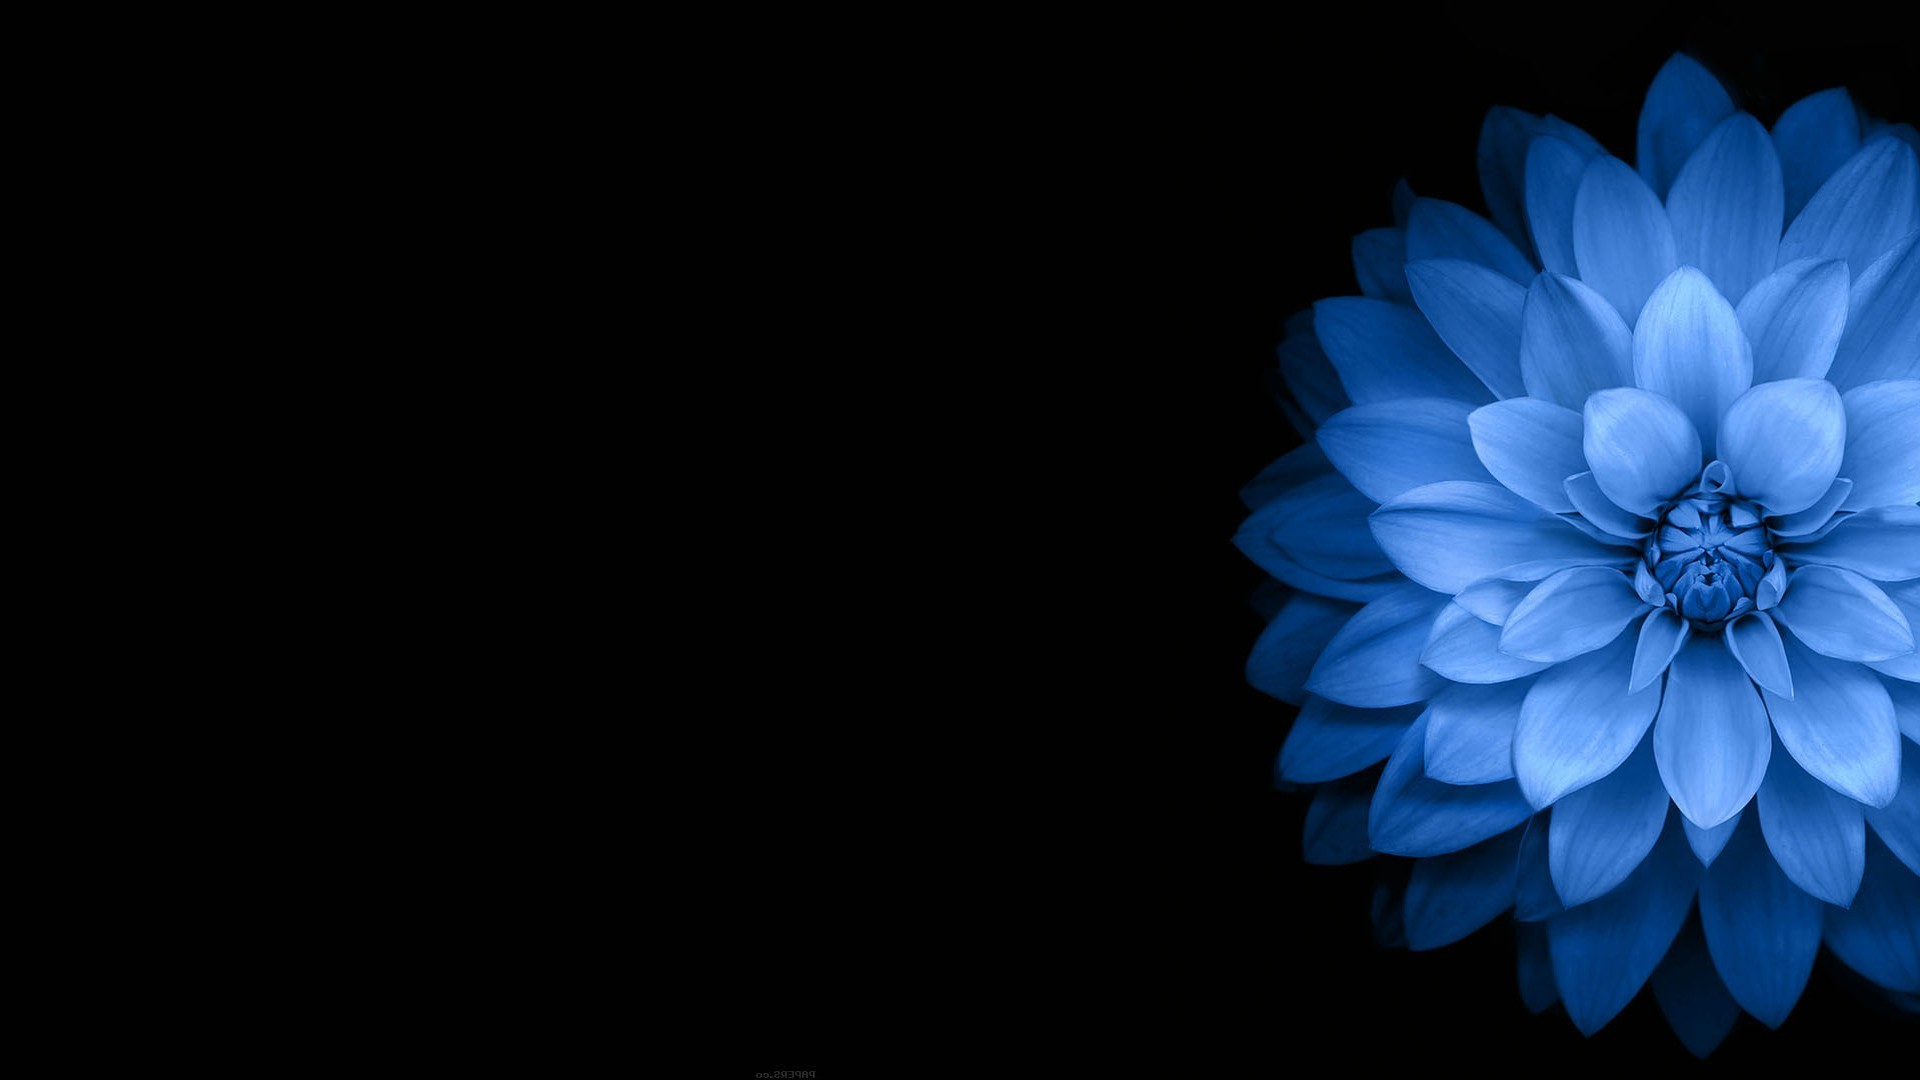 blue flower wallpaper 60 pictures